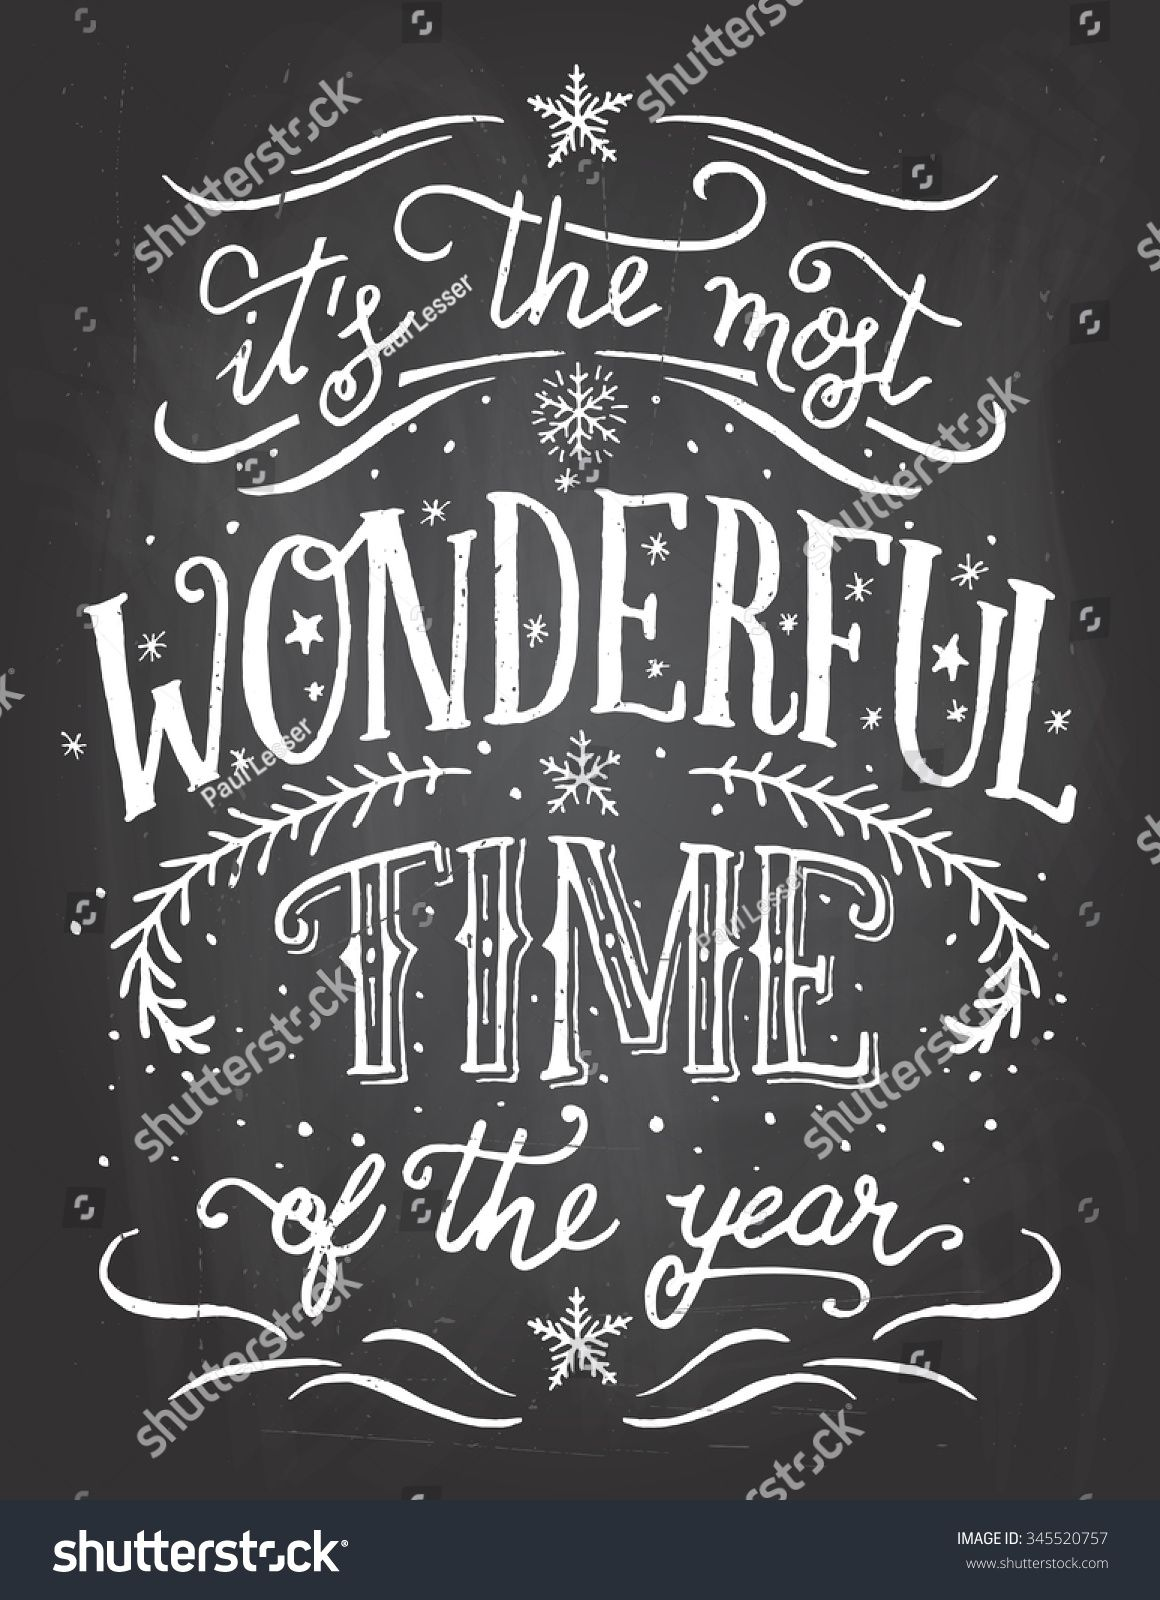 Image result for chalkboard art it's the most wonderful